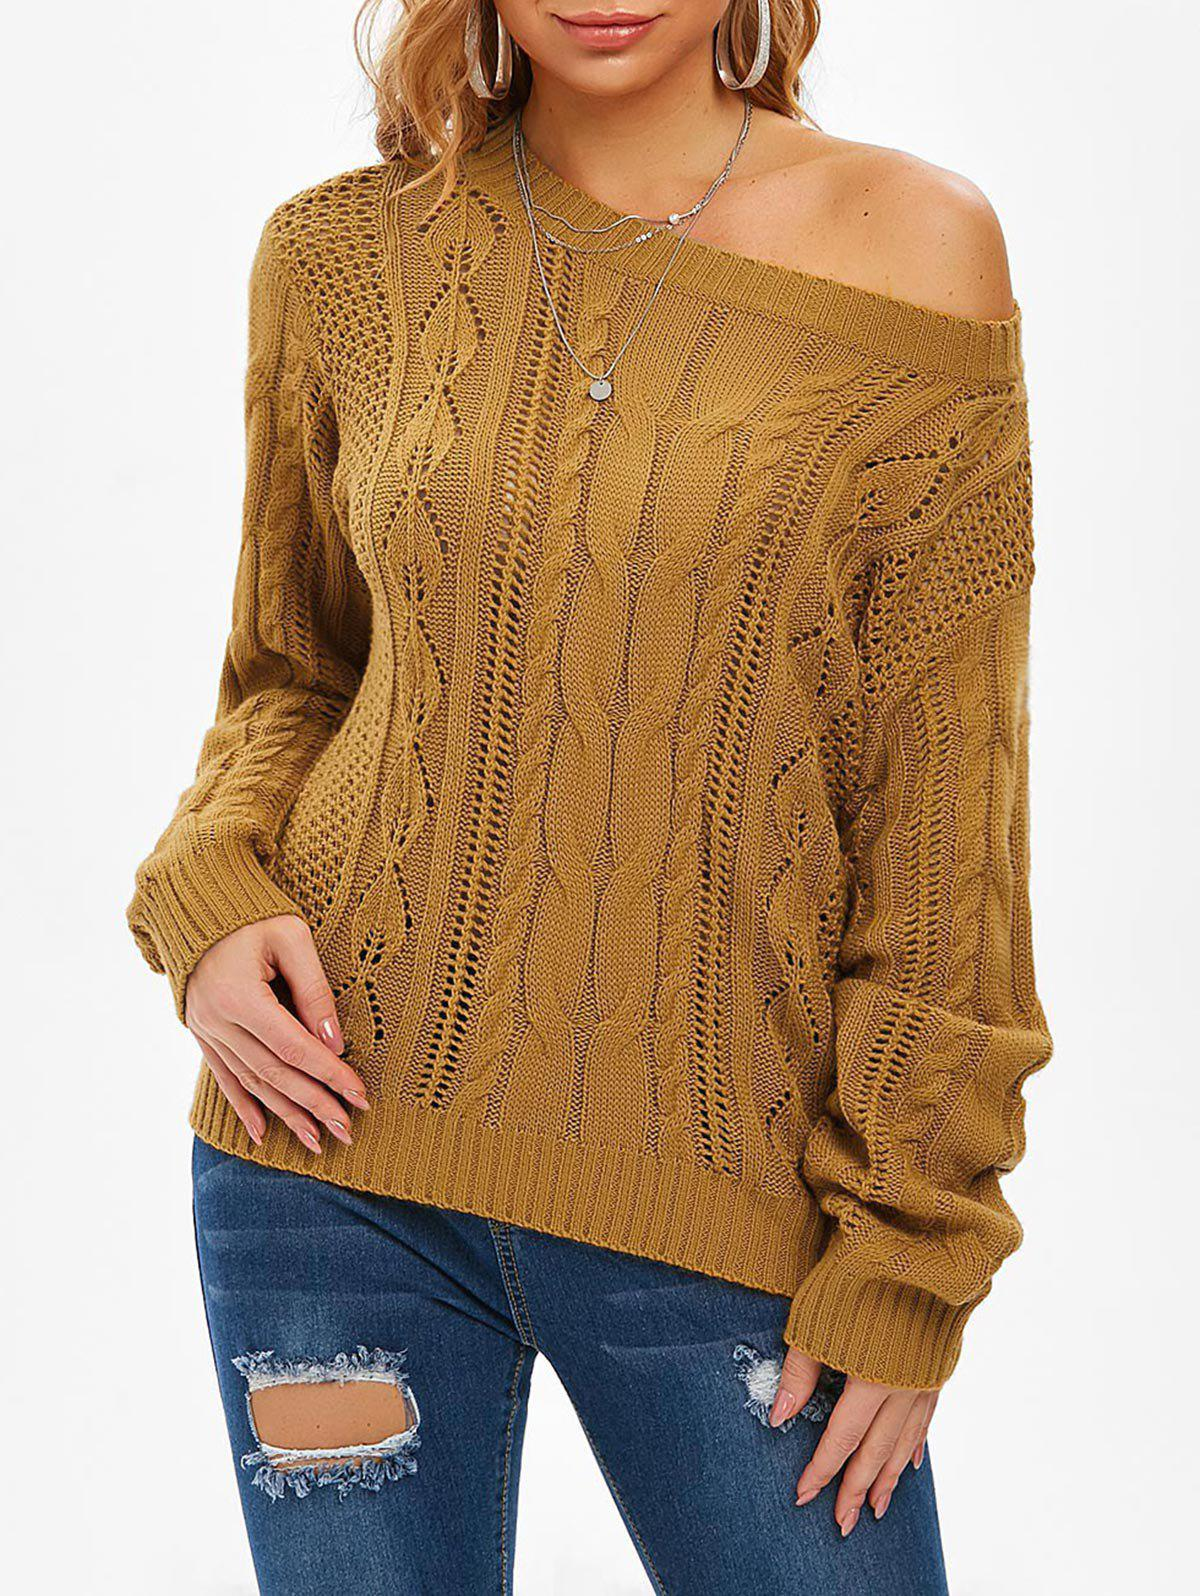 Chandail Pull-over Ajouré en Tricot à Câble - Deep Yellow M